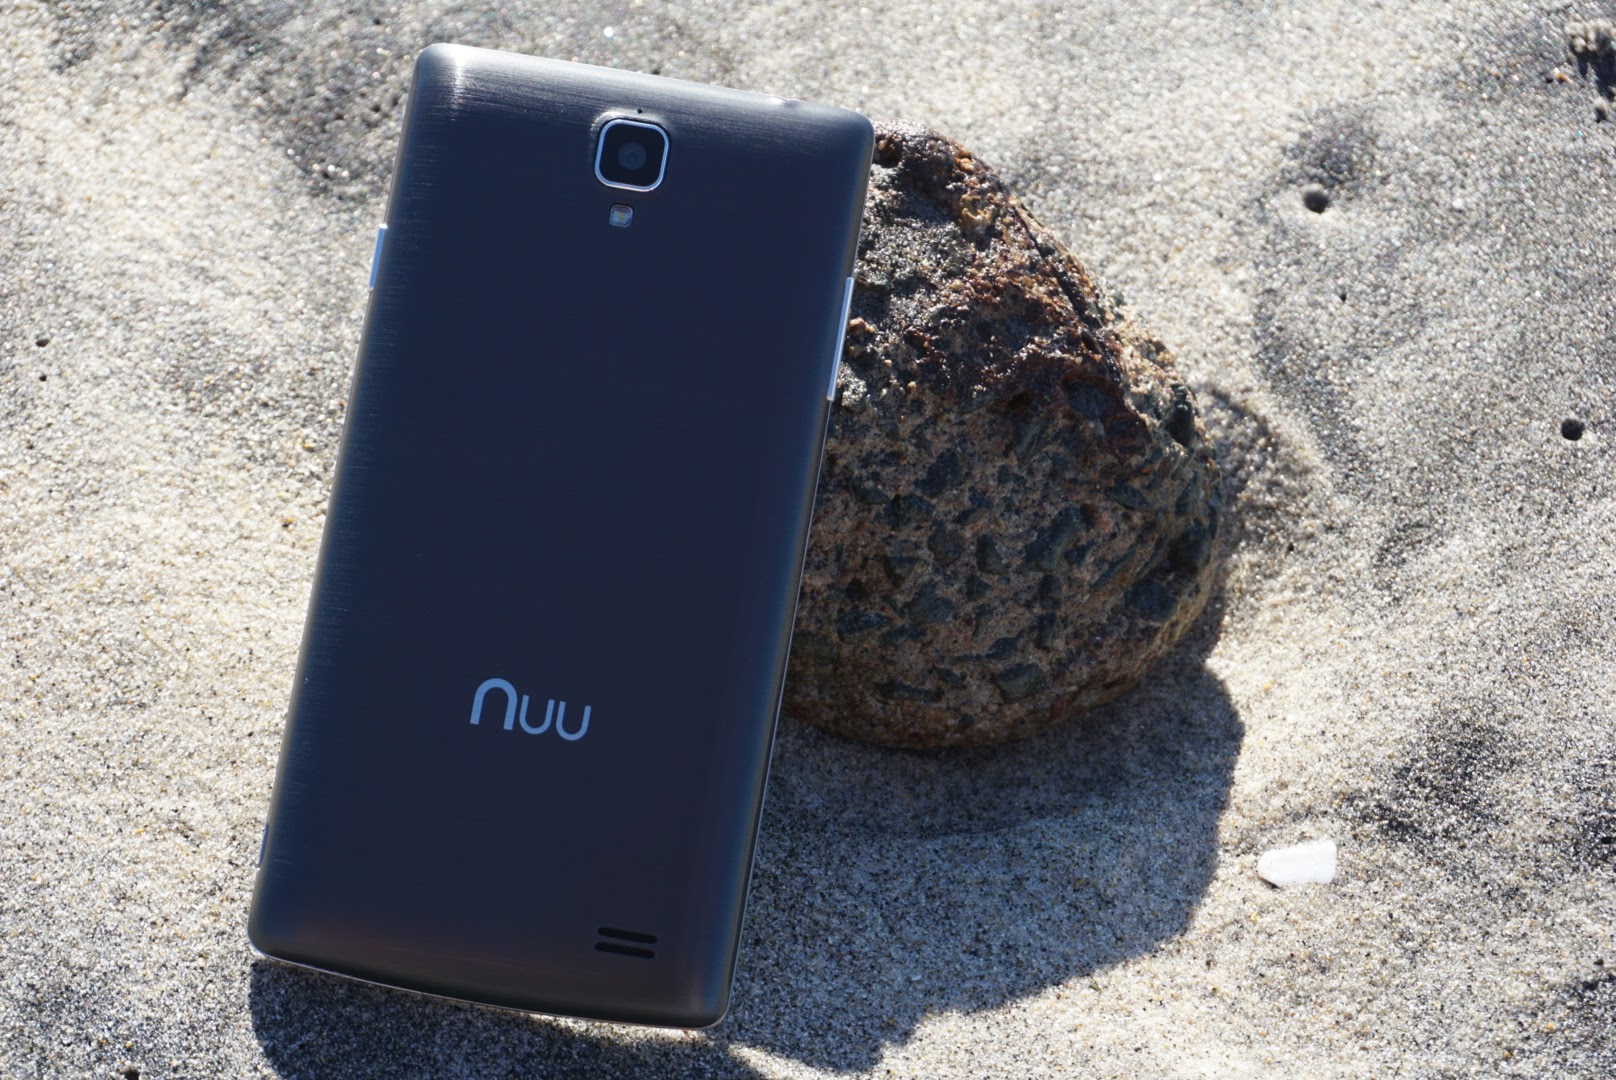 Phone Reviews 7 9 Androidguys Nuu F1 The Mobile Z8 Is A Premium Flagship Disguised By Its Low Price Review